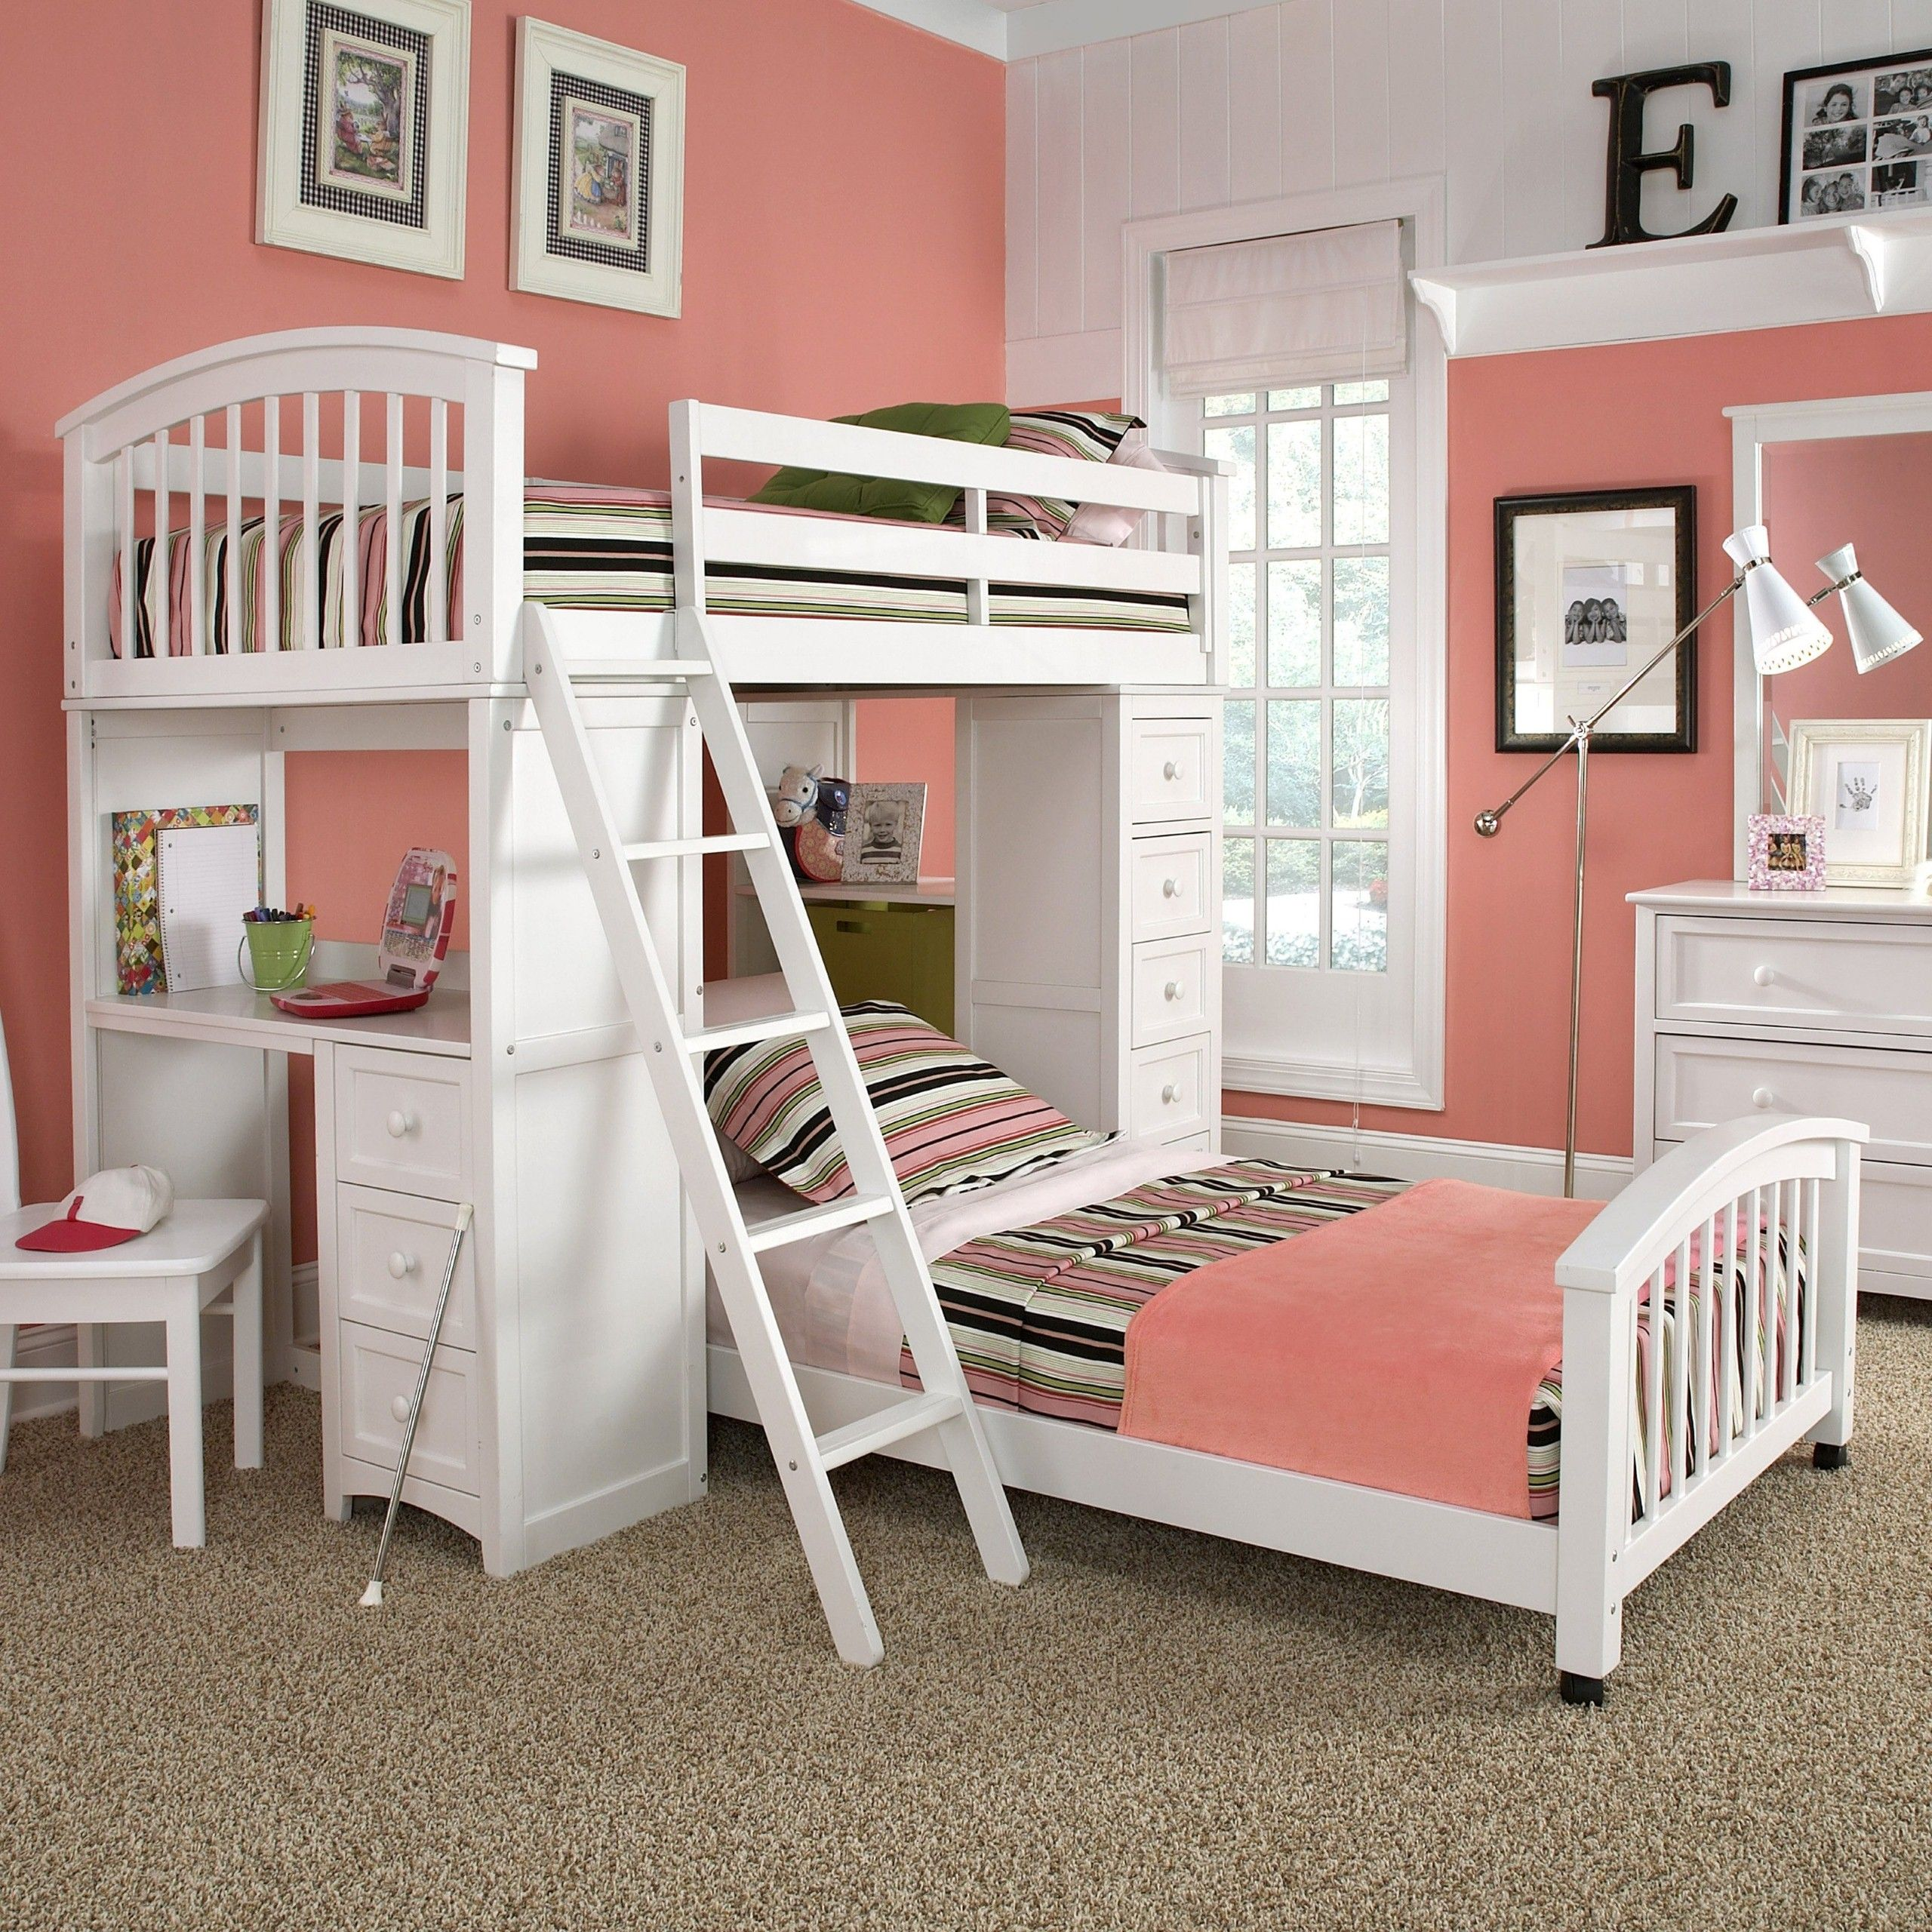 Bedroom ideas for teenage girls light pink - Bunk Bed